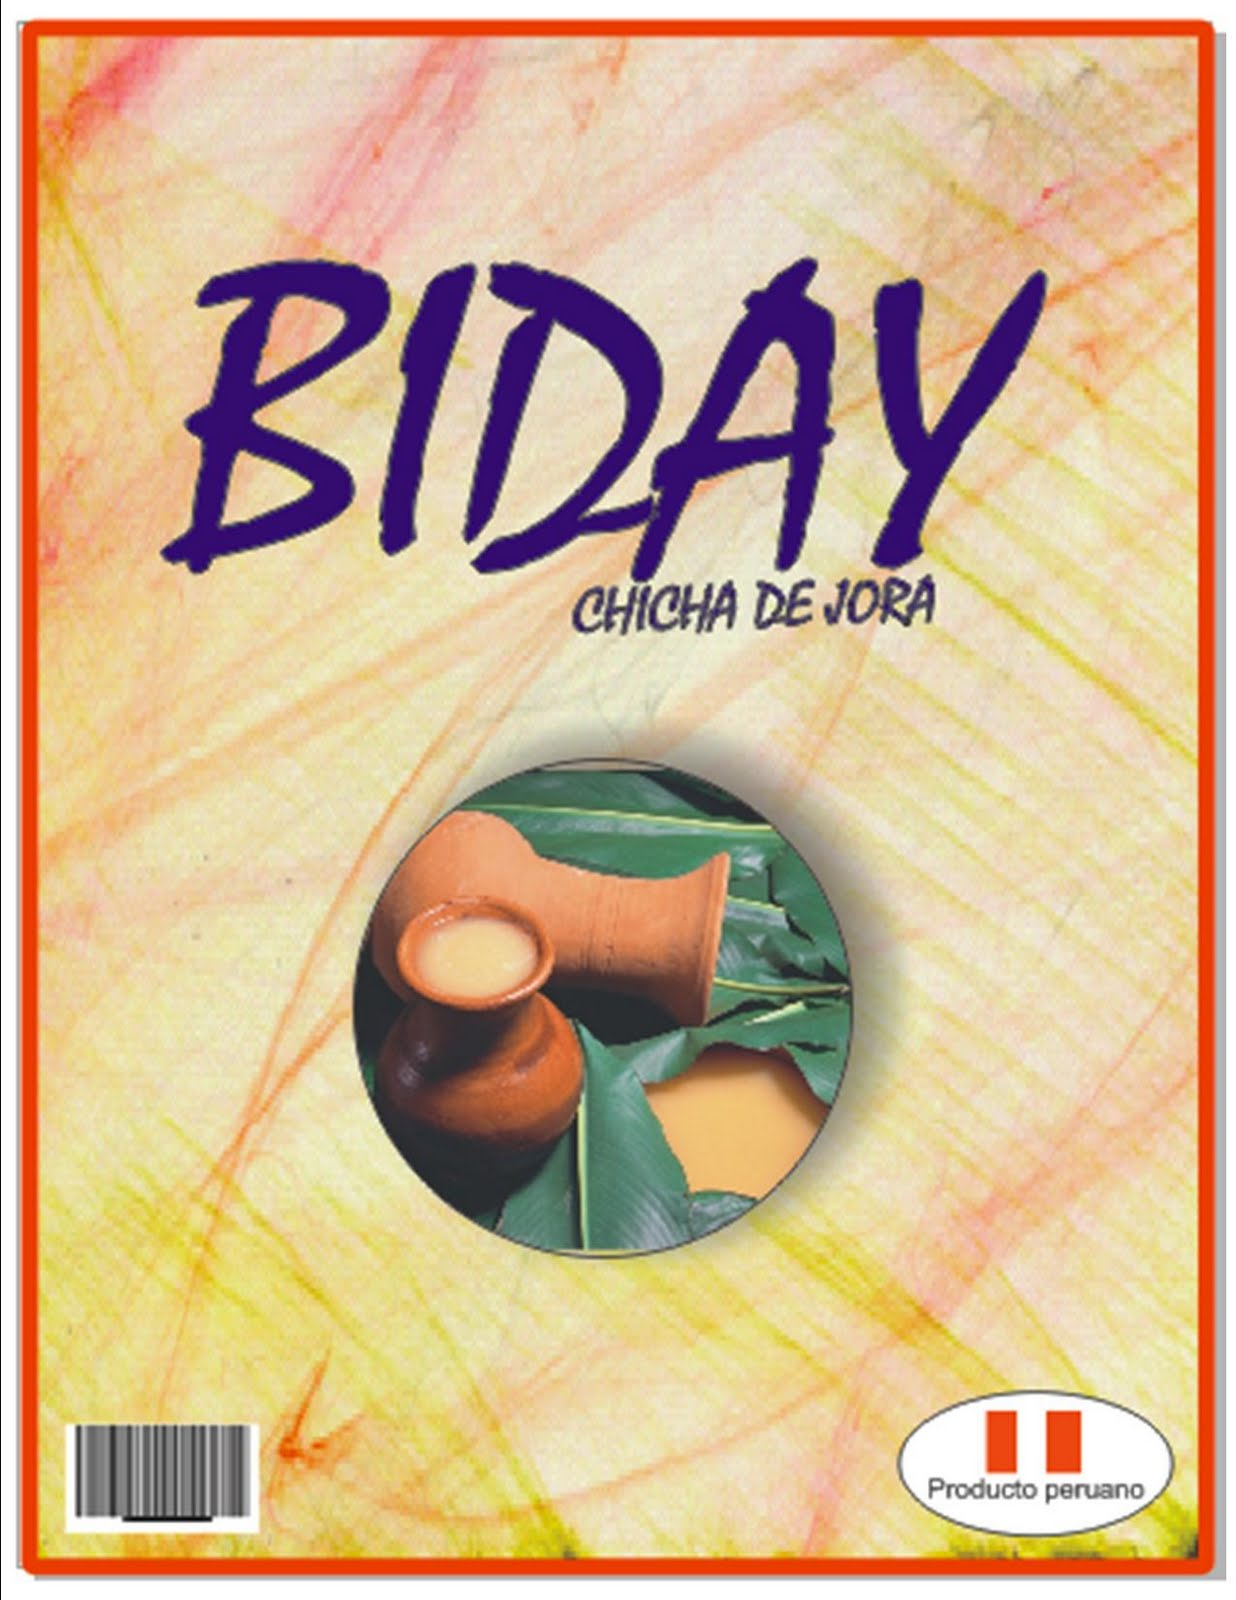 Chicha de Jora - BIDAY